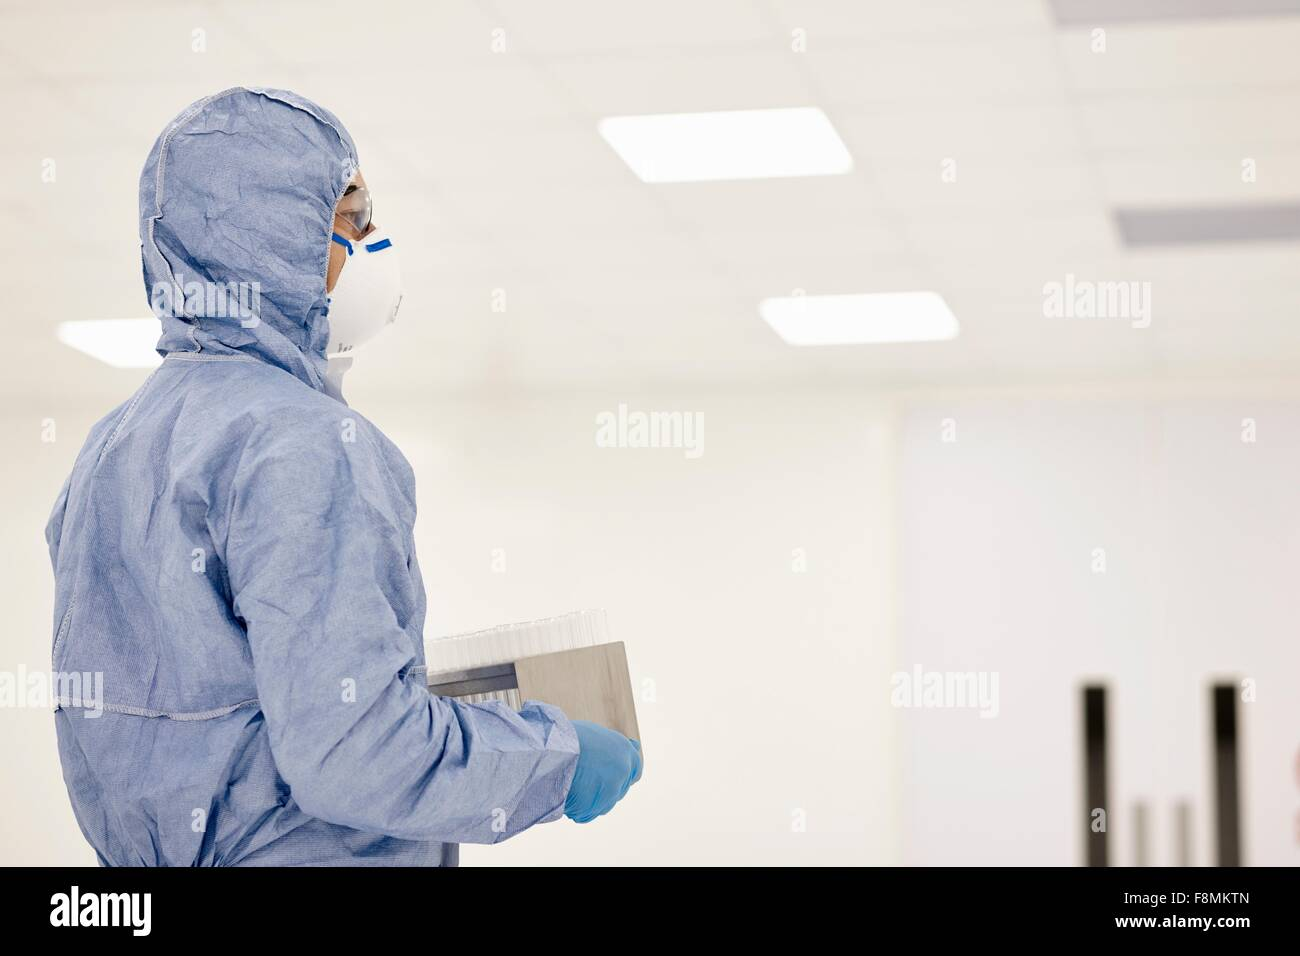 Scientist carrying tray of test tubes in laboratory - Stock Image